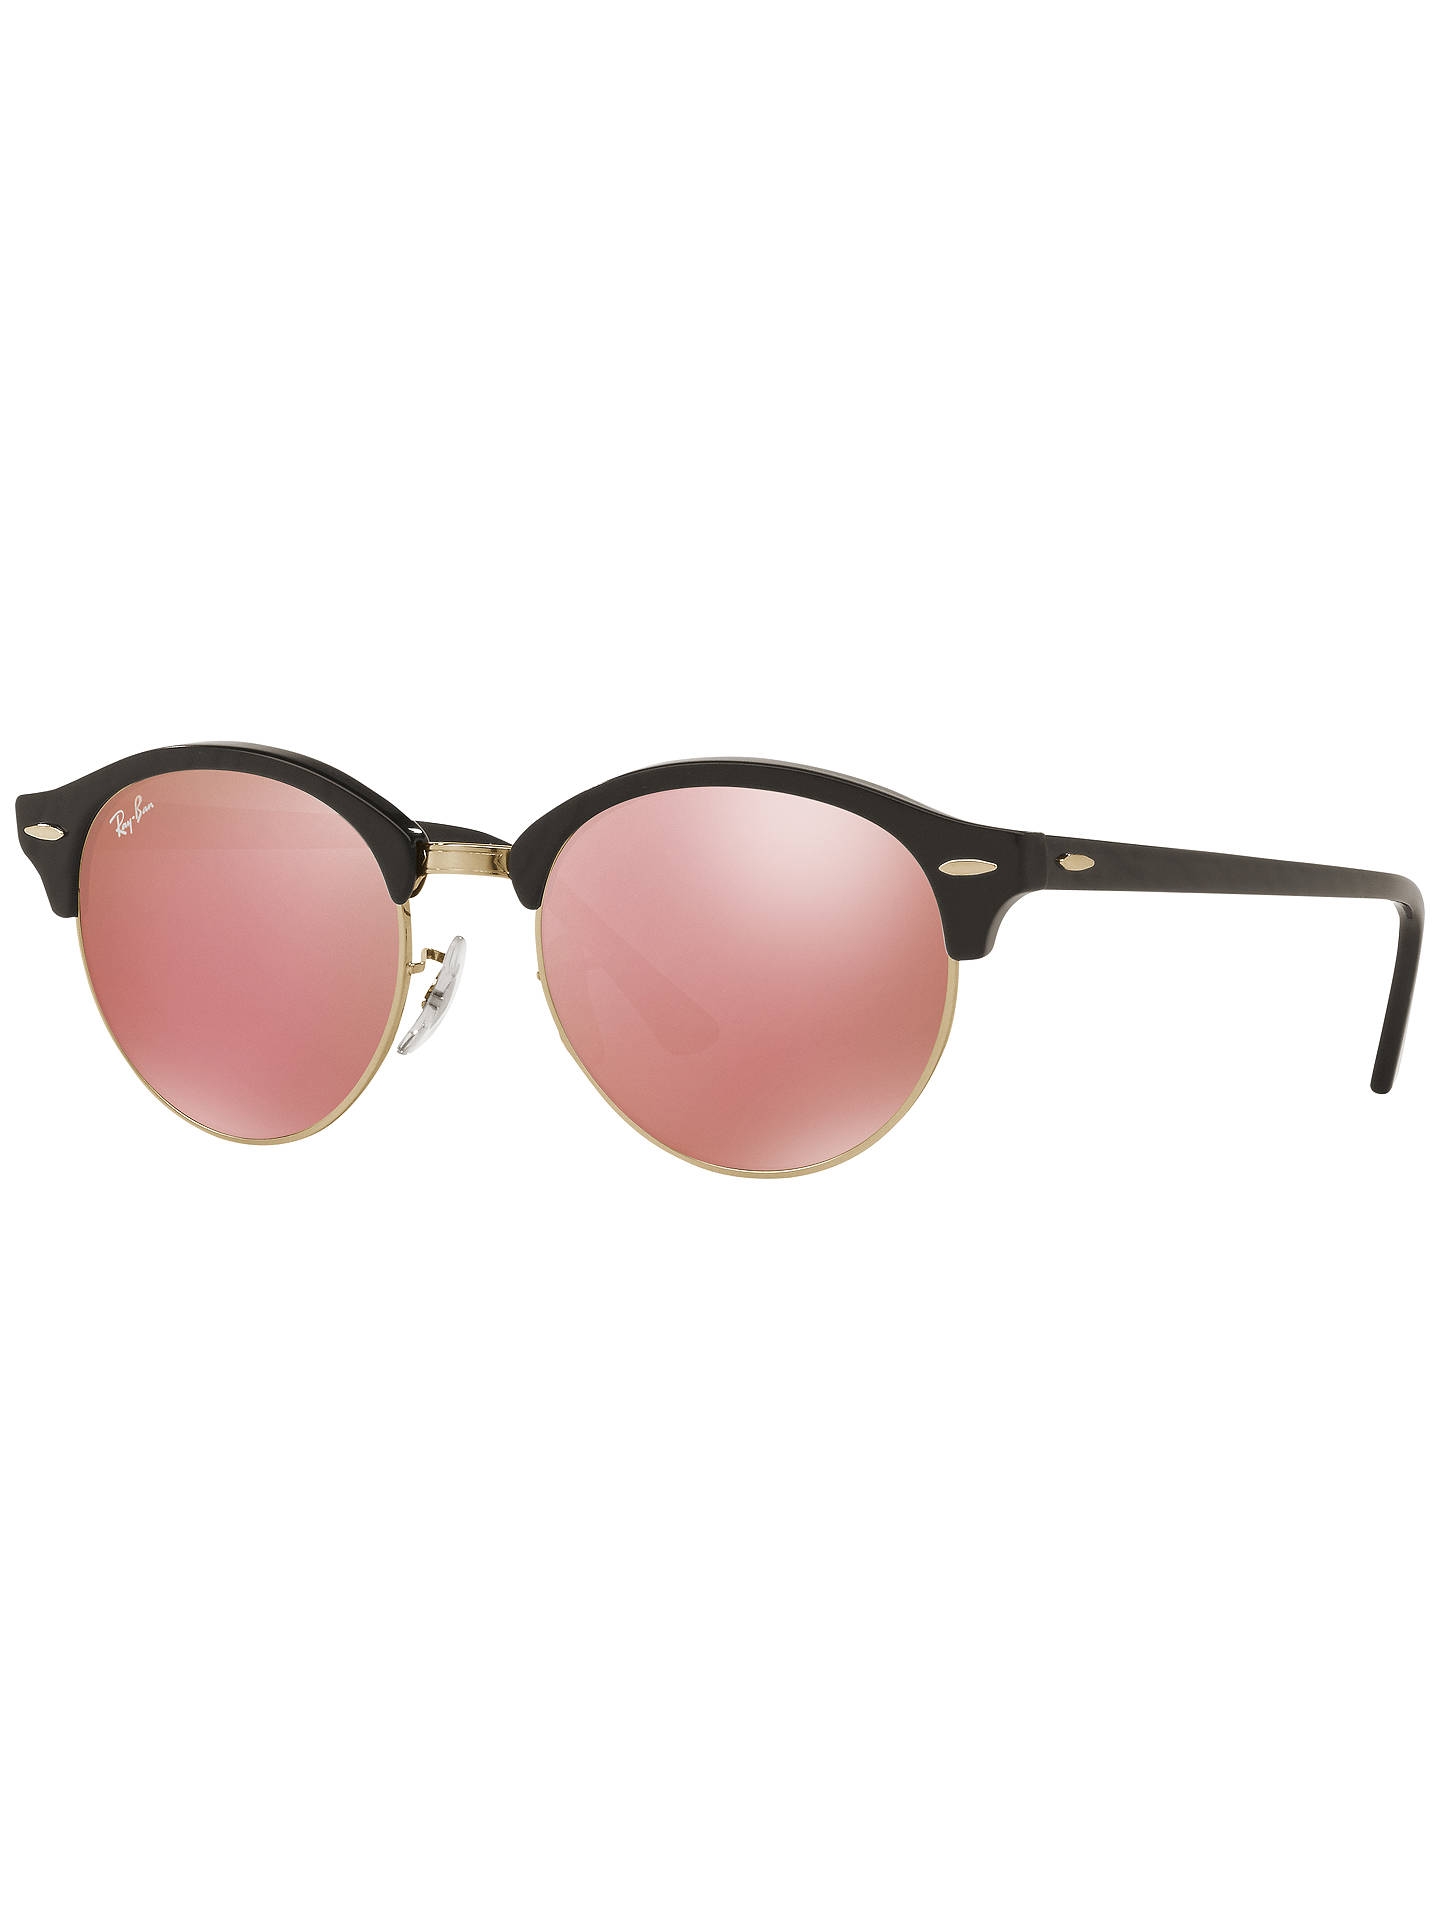 ccb06091e12e Buy Ray-Ban RB4246 Unisex Clubround Round Sunglasses, Black/Cherry Blossom  Online at ...